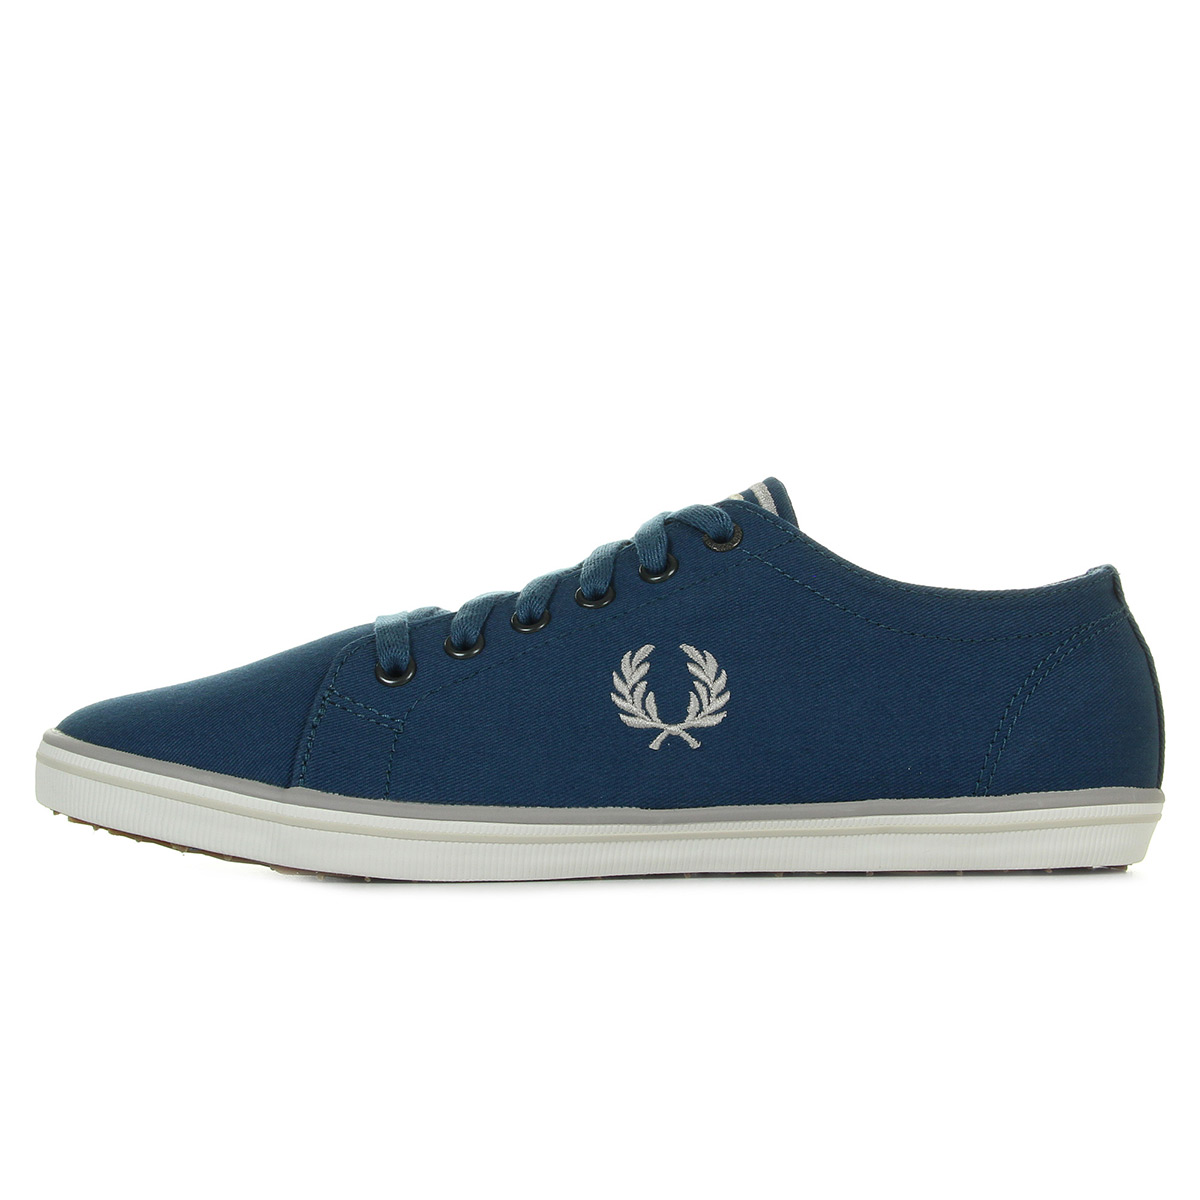 Baskets Fred Perry Kingston Twill Carbon Blue mp6T1LXb